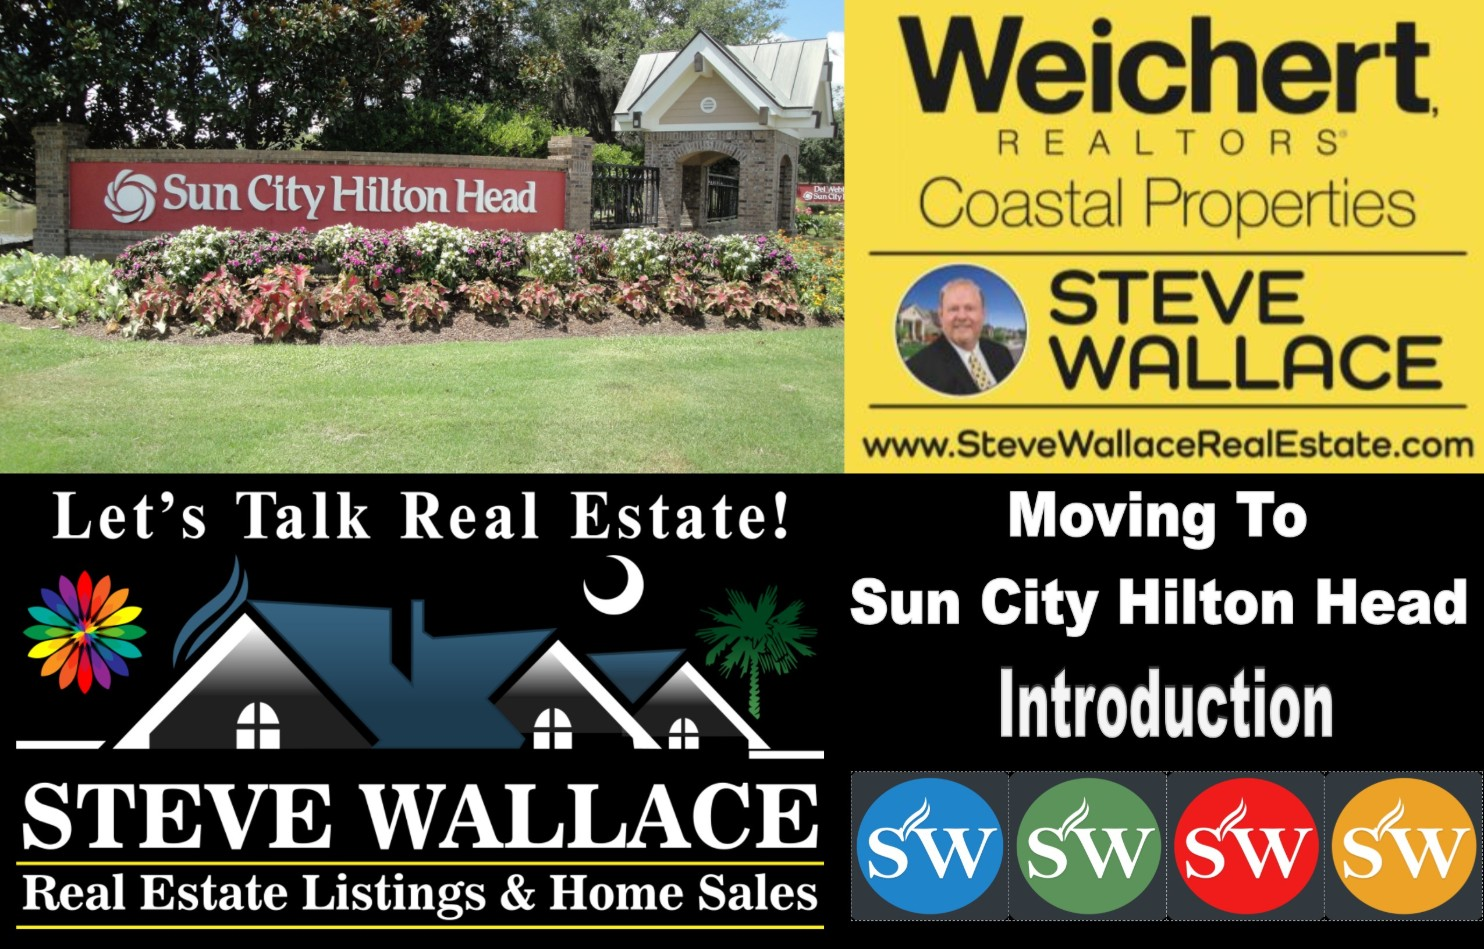 Moving to, Sun City Hilton Head, Blog, Introduction, Steve Wallace Real Estate